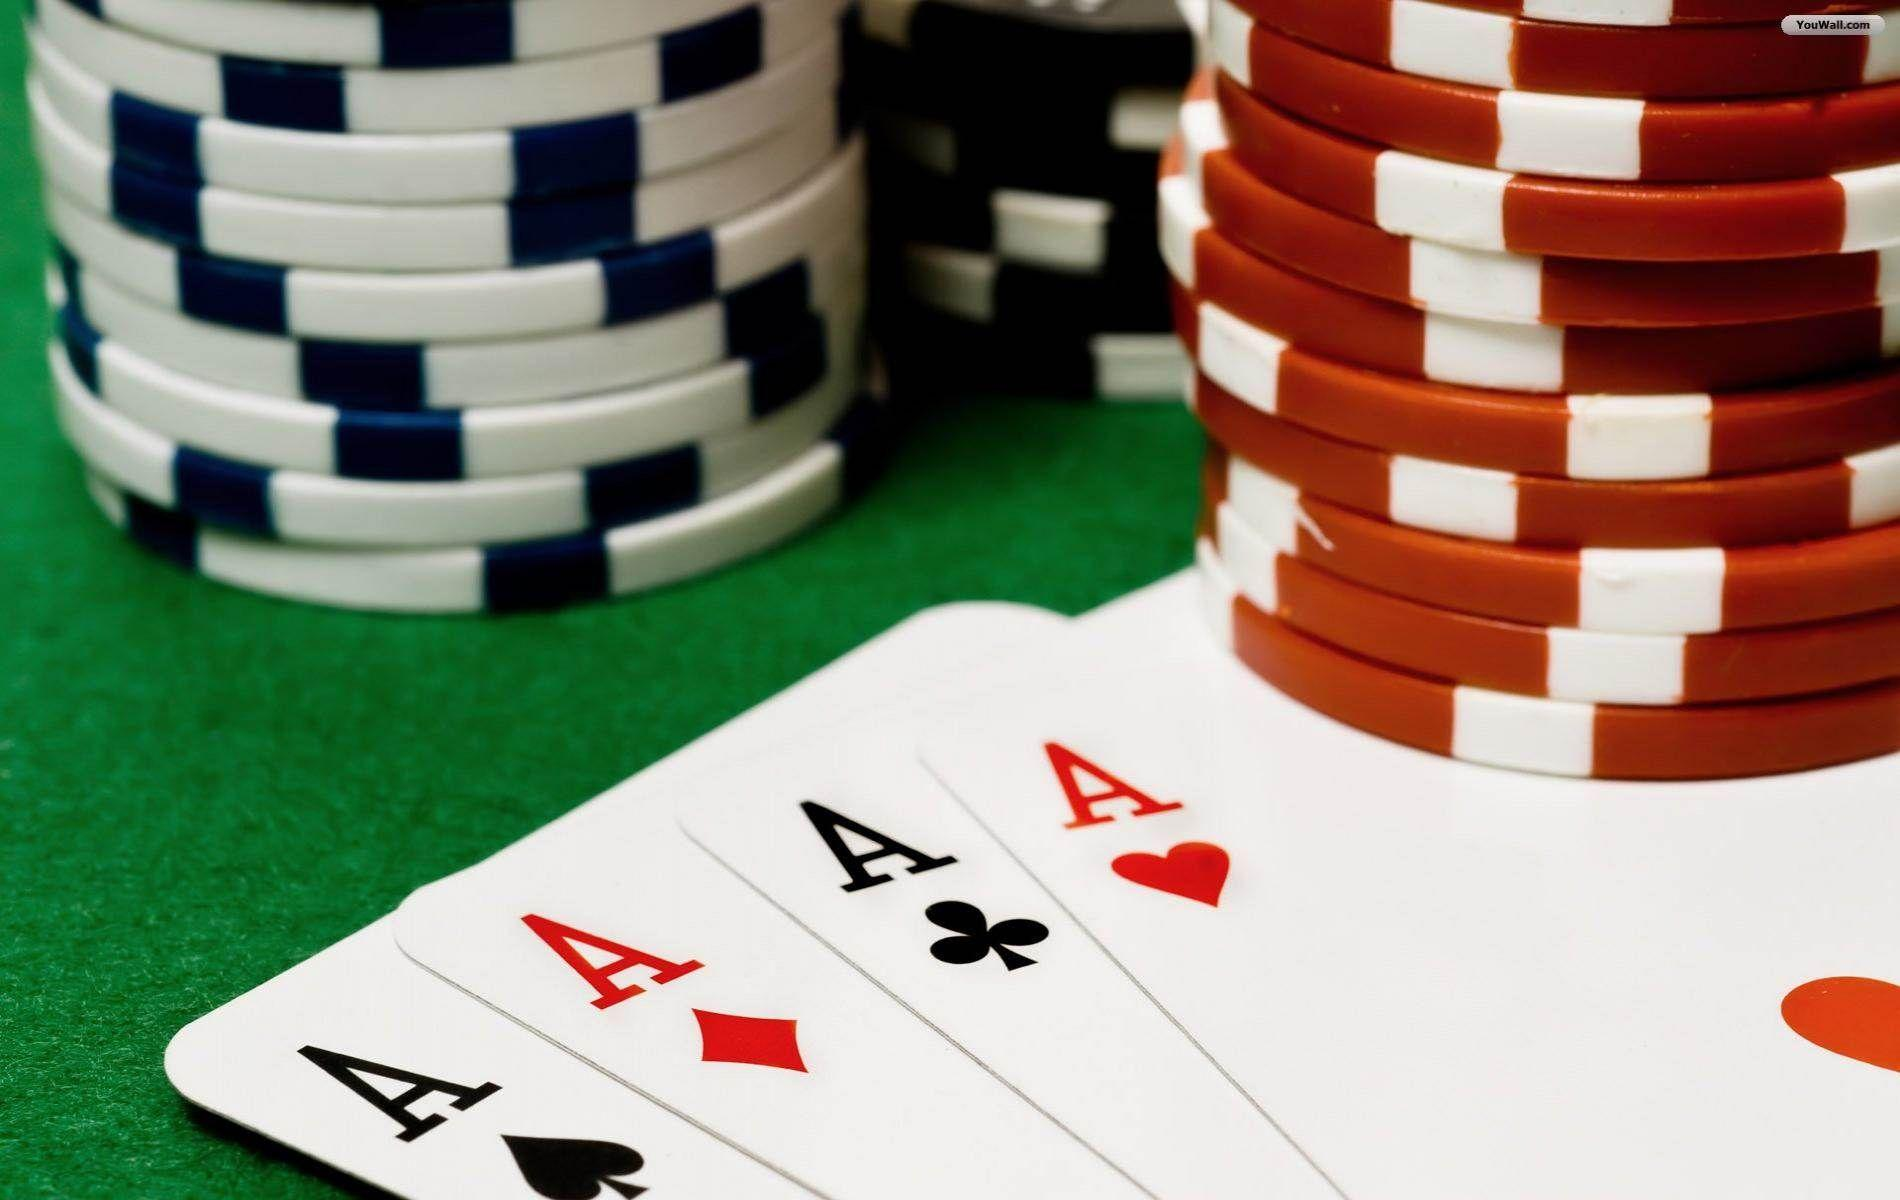 Pump Up Your Gross Sales With These Exceptional Gambling Ways